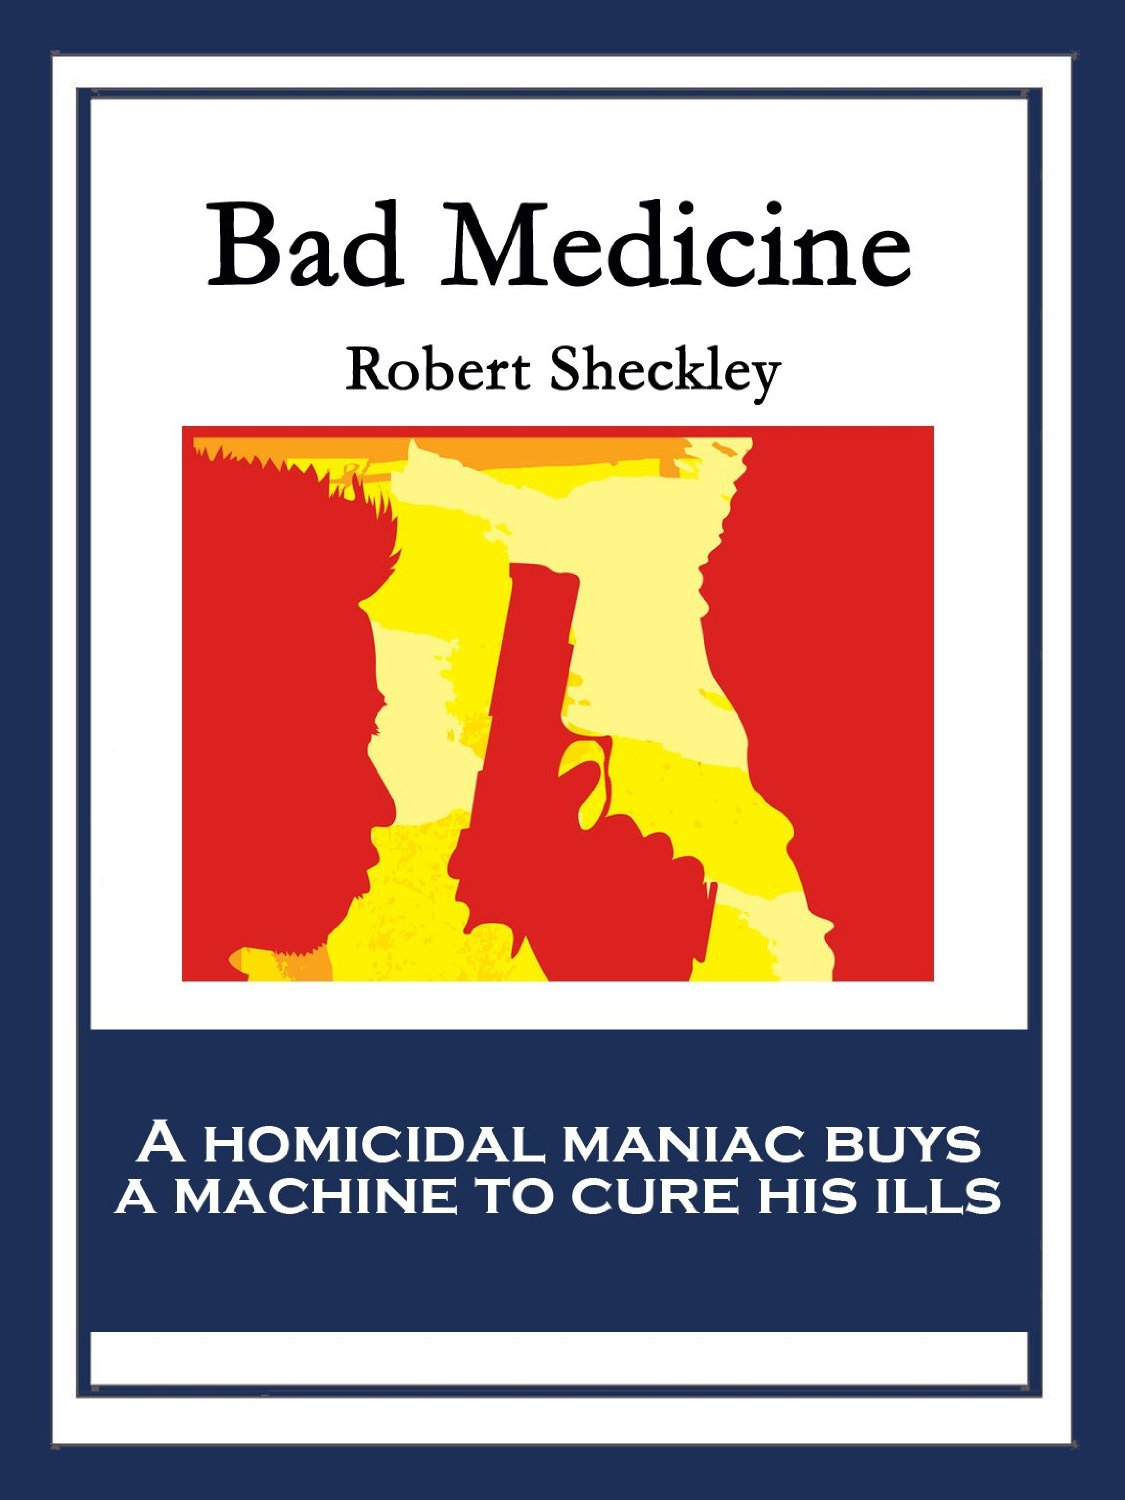 Cover of the book Bad Medicine by Robert Sheckley